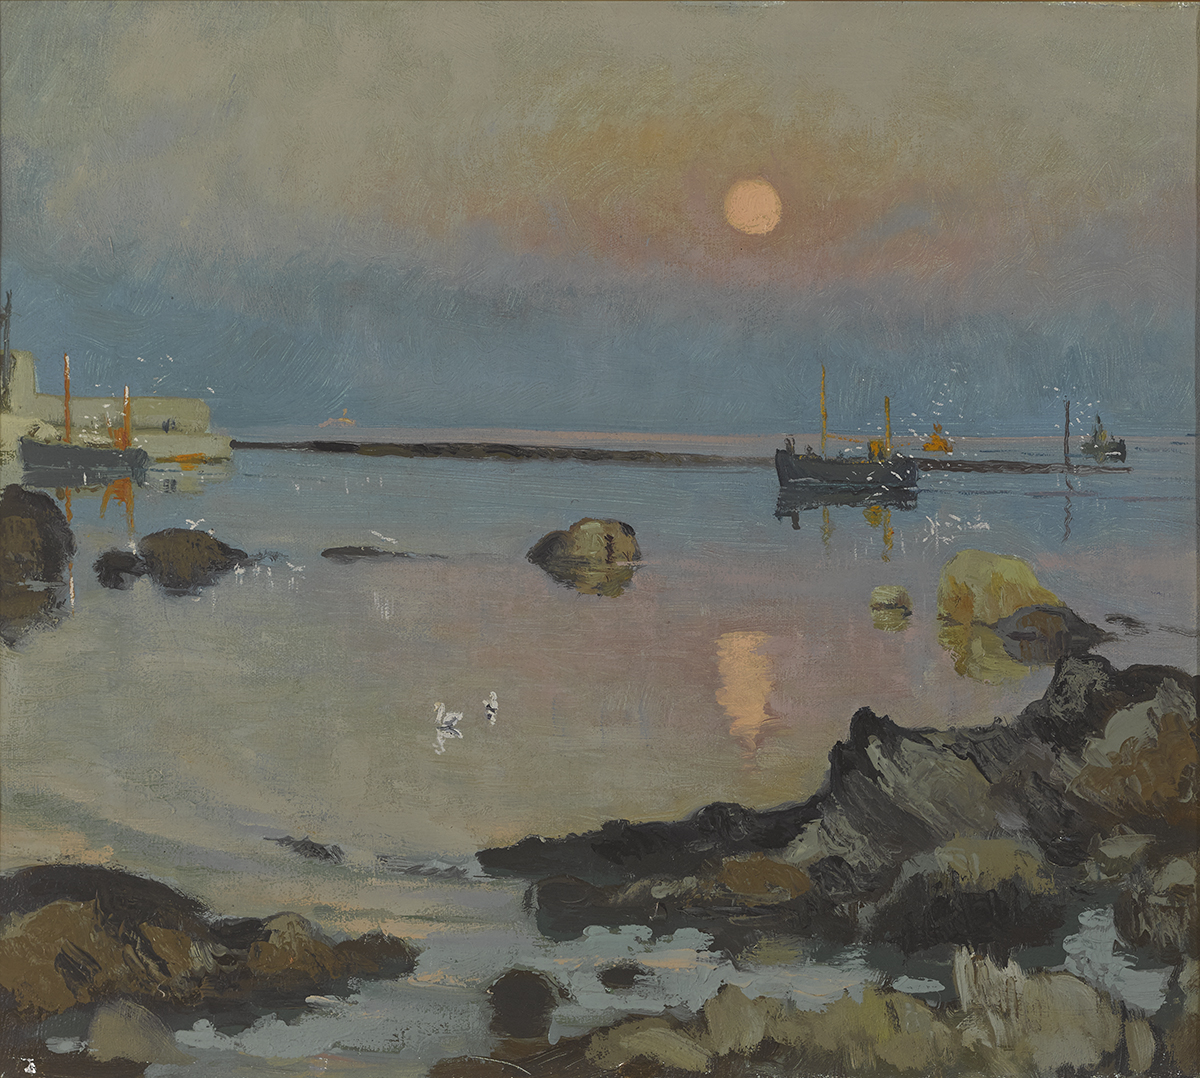 Lot 8 - Patrick Leonard HRHA (1918-2005)MOON OVER RUSH HARBOUR oil on canvas signed on reverse 16 by